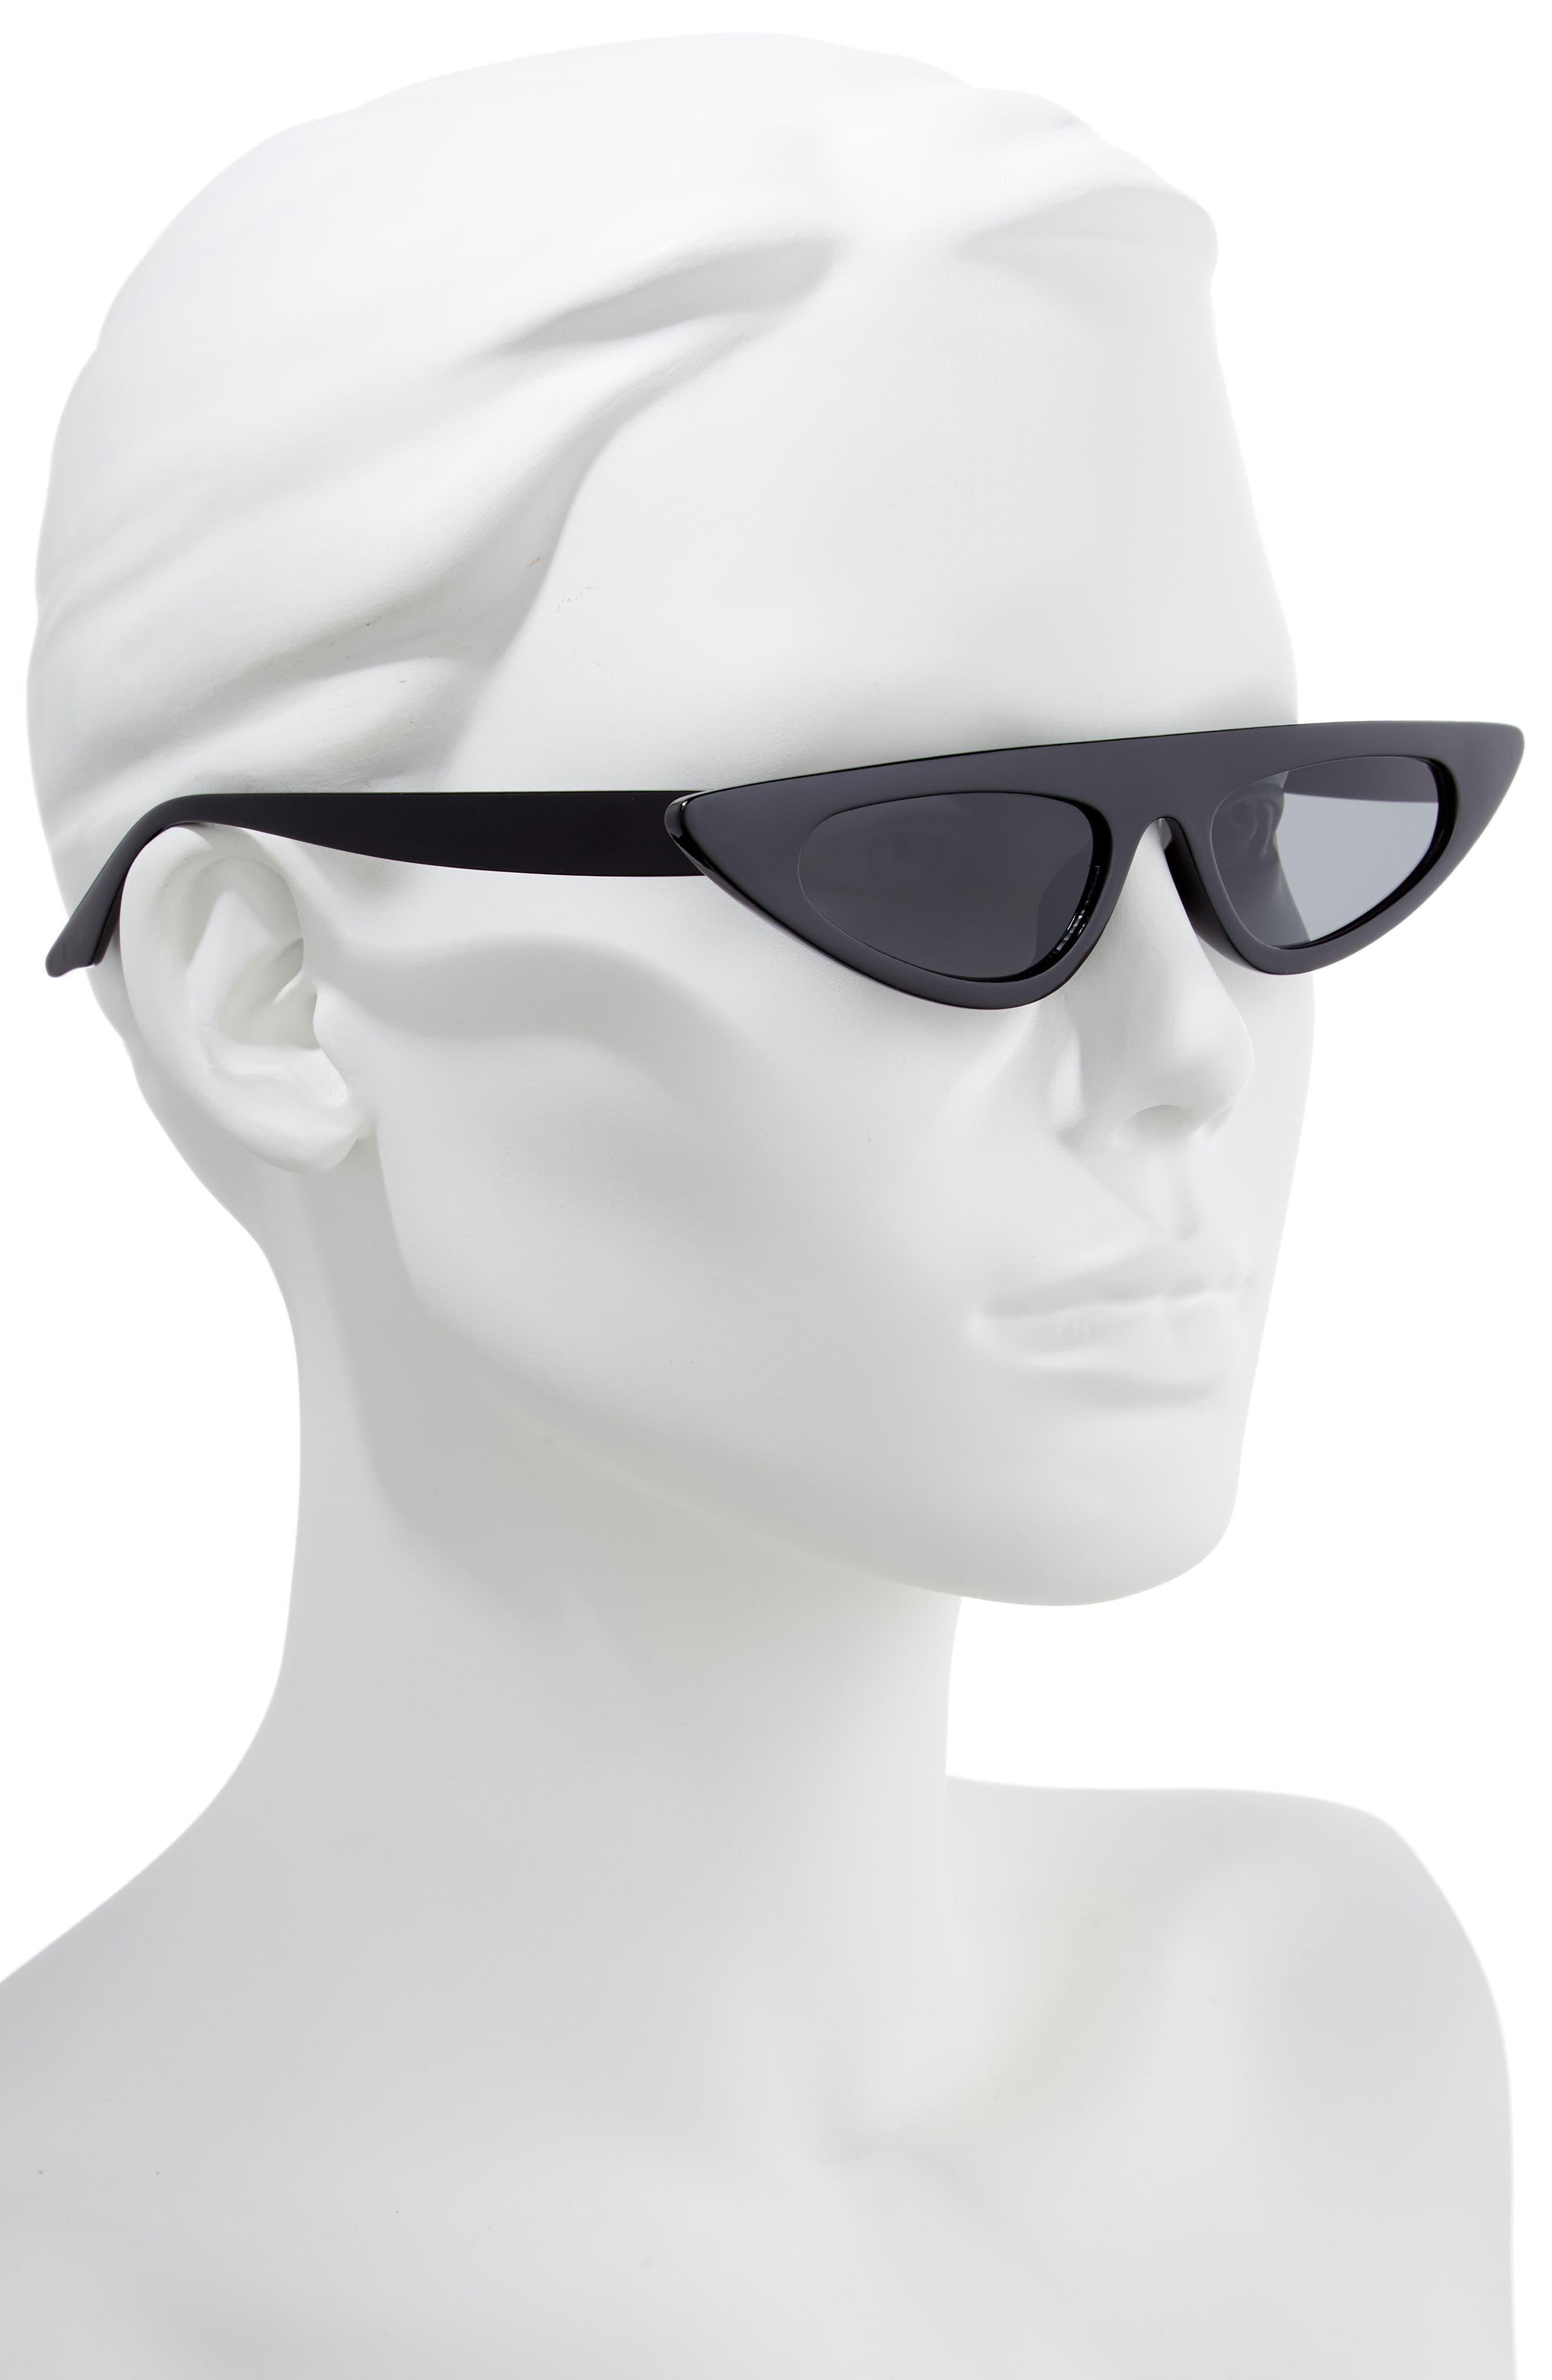 50mm Flat Top Cat Eye Sunglasses,                             Alternate thumbnail 2, color,                             BLACK